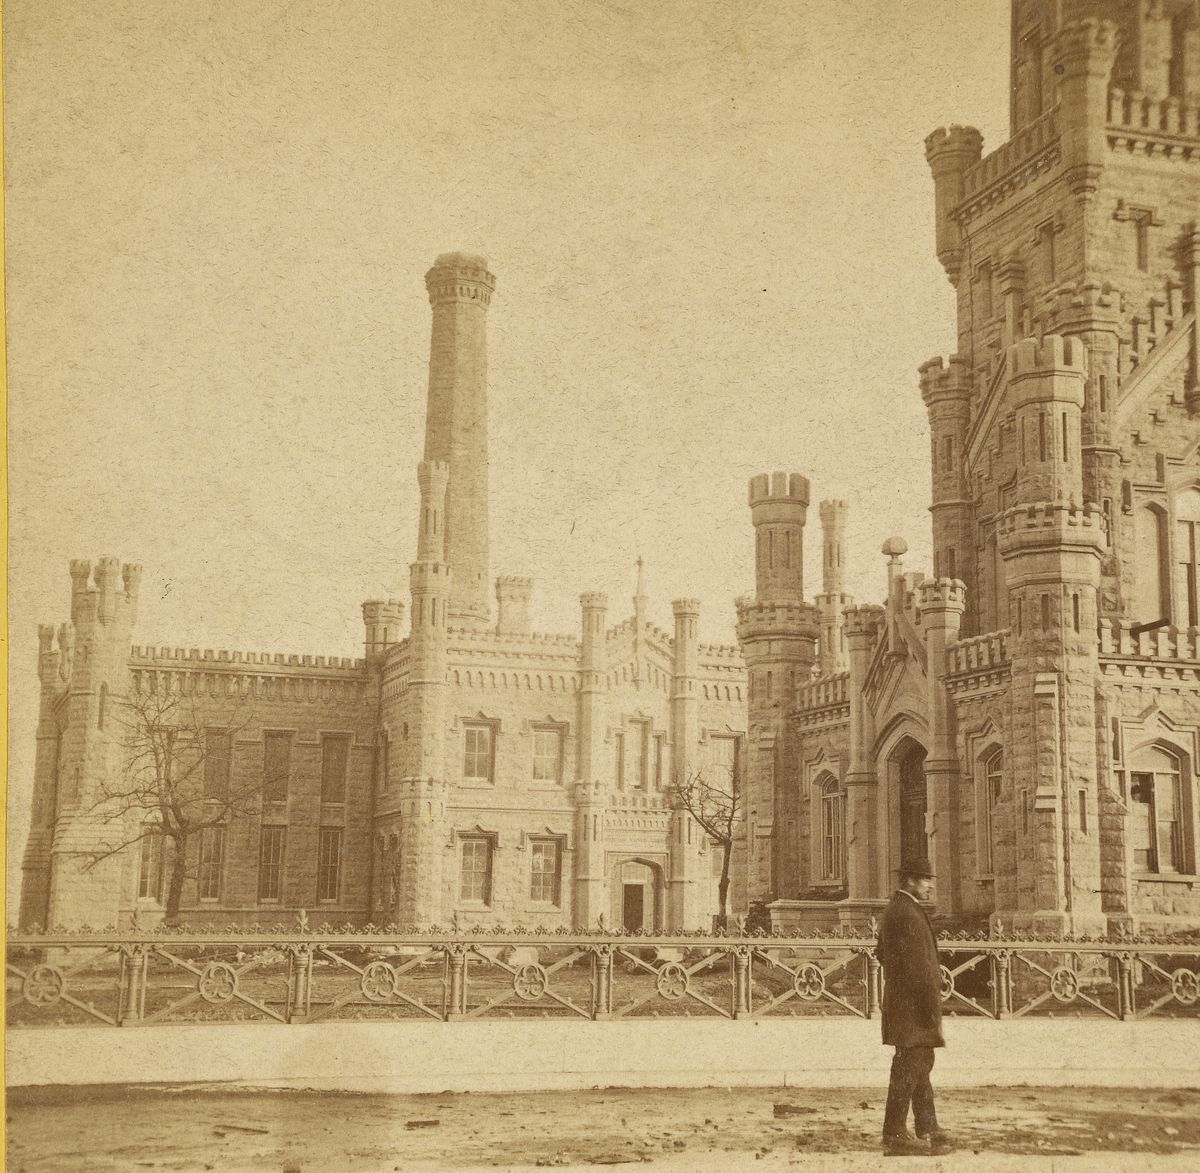 The Water Tower was among the few structures to survive the Great Chicago Fire.